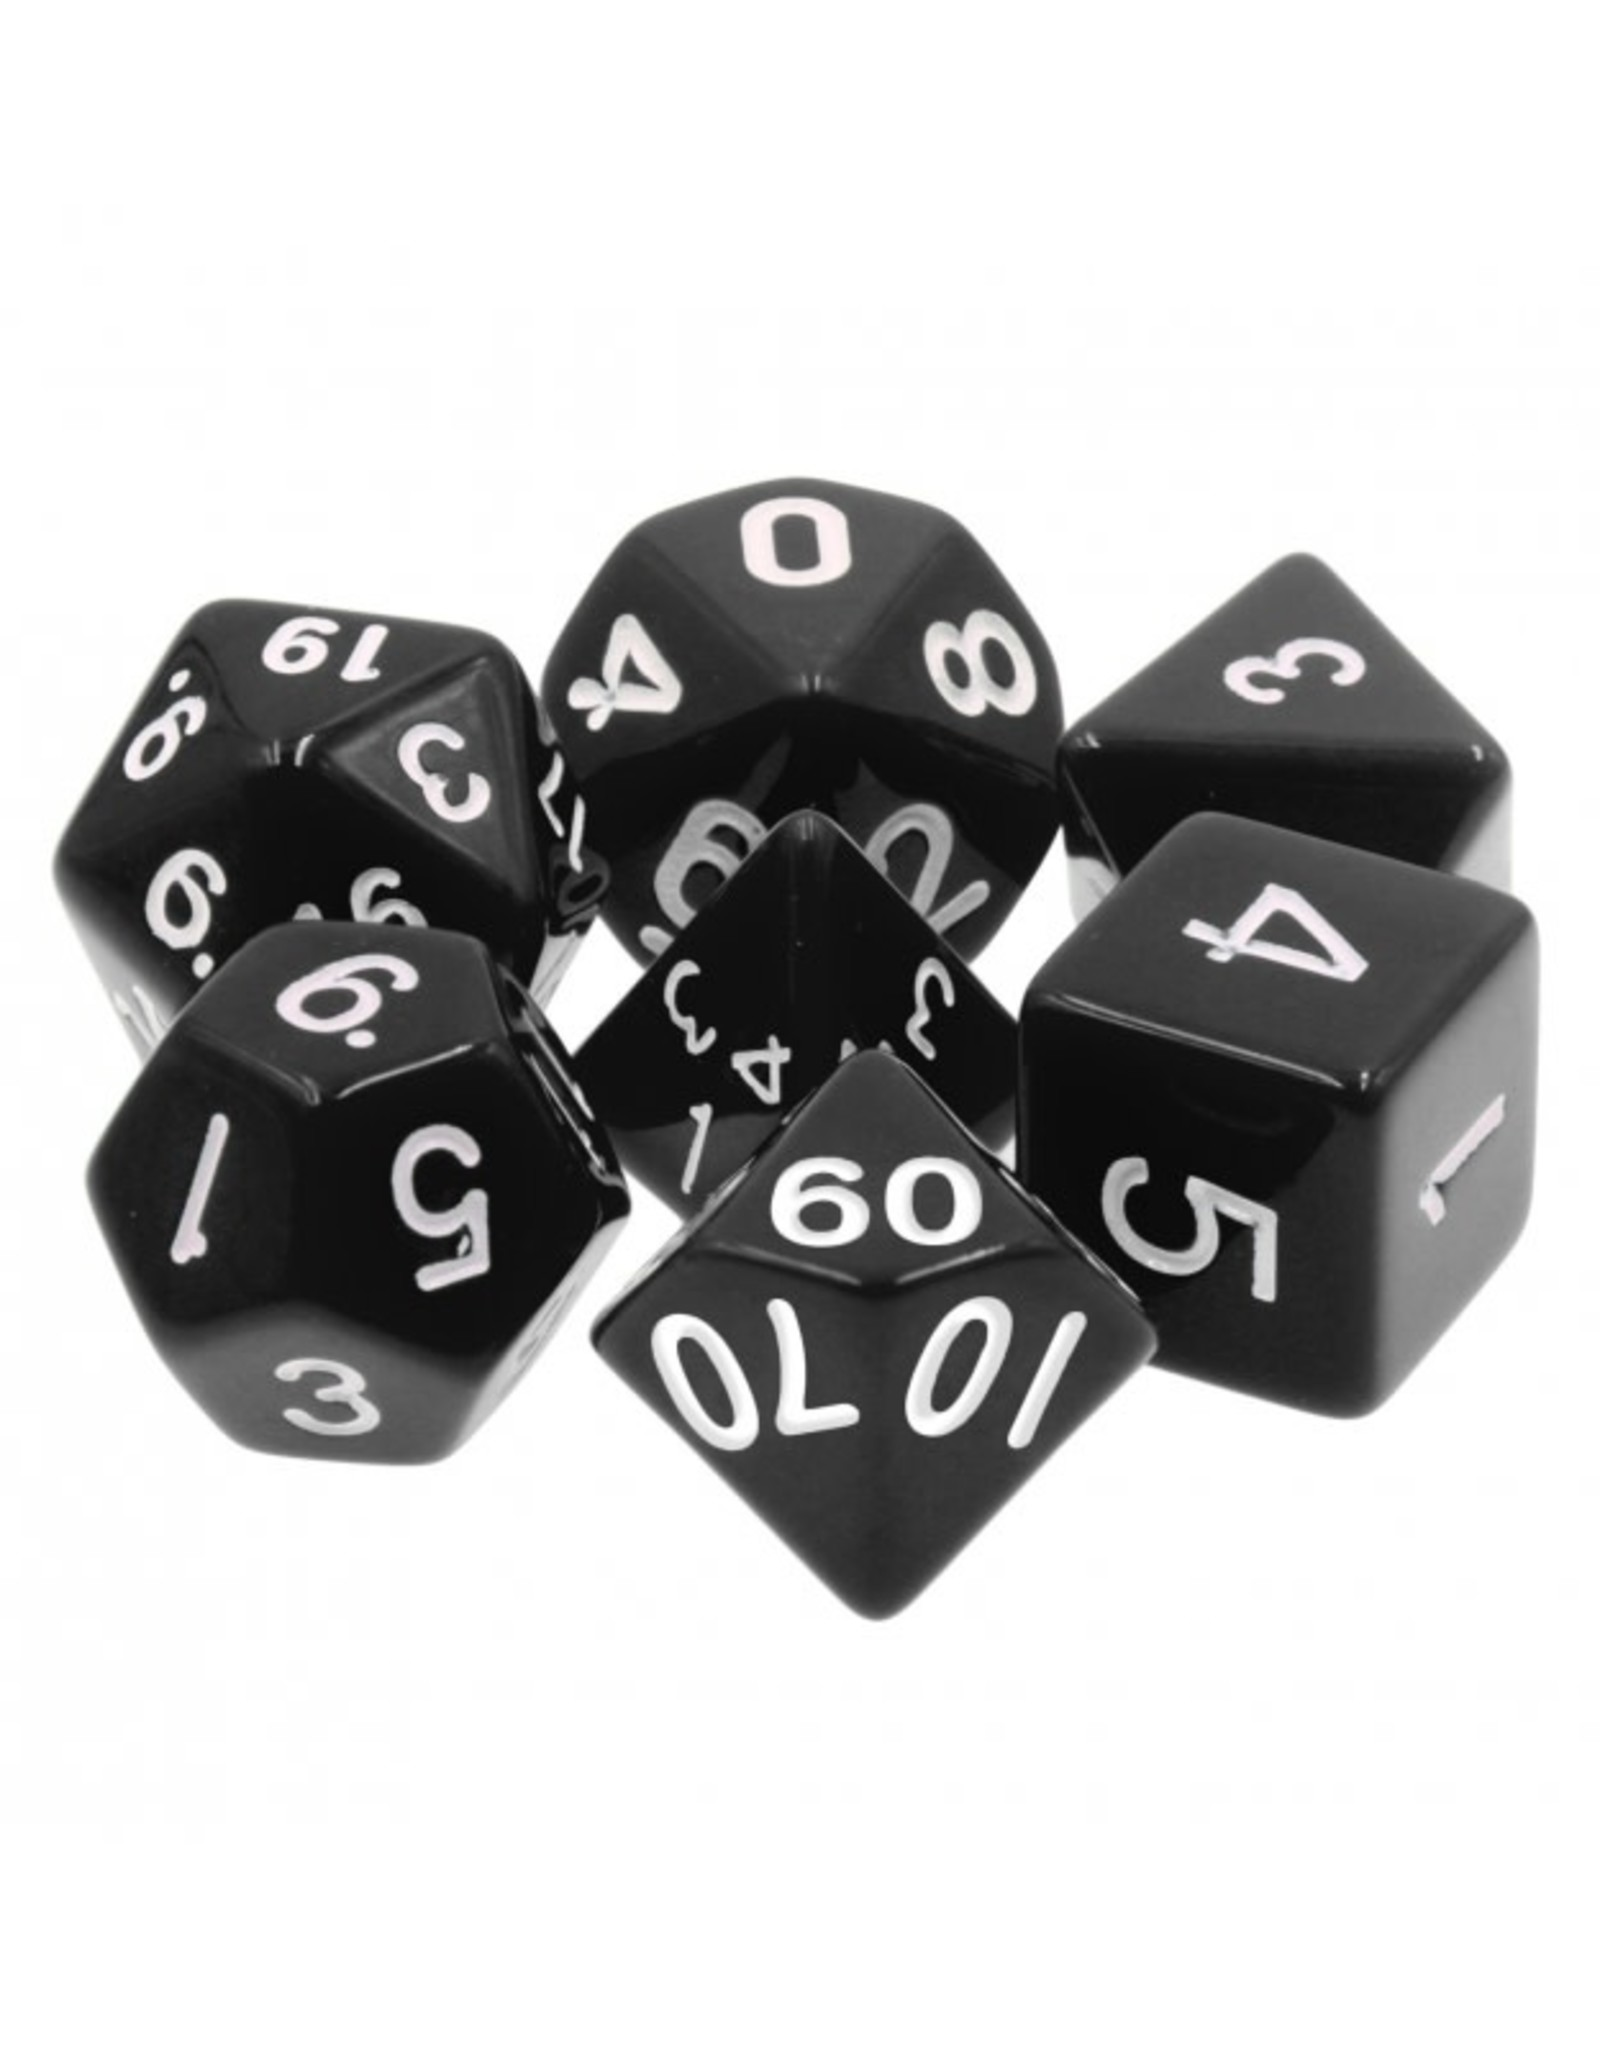 HD Dice 7-Set Opaque Black with White Numbers (HD)